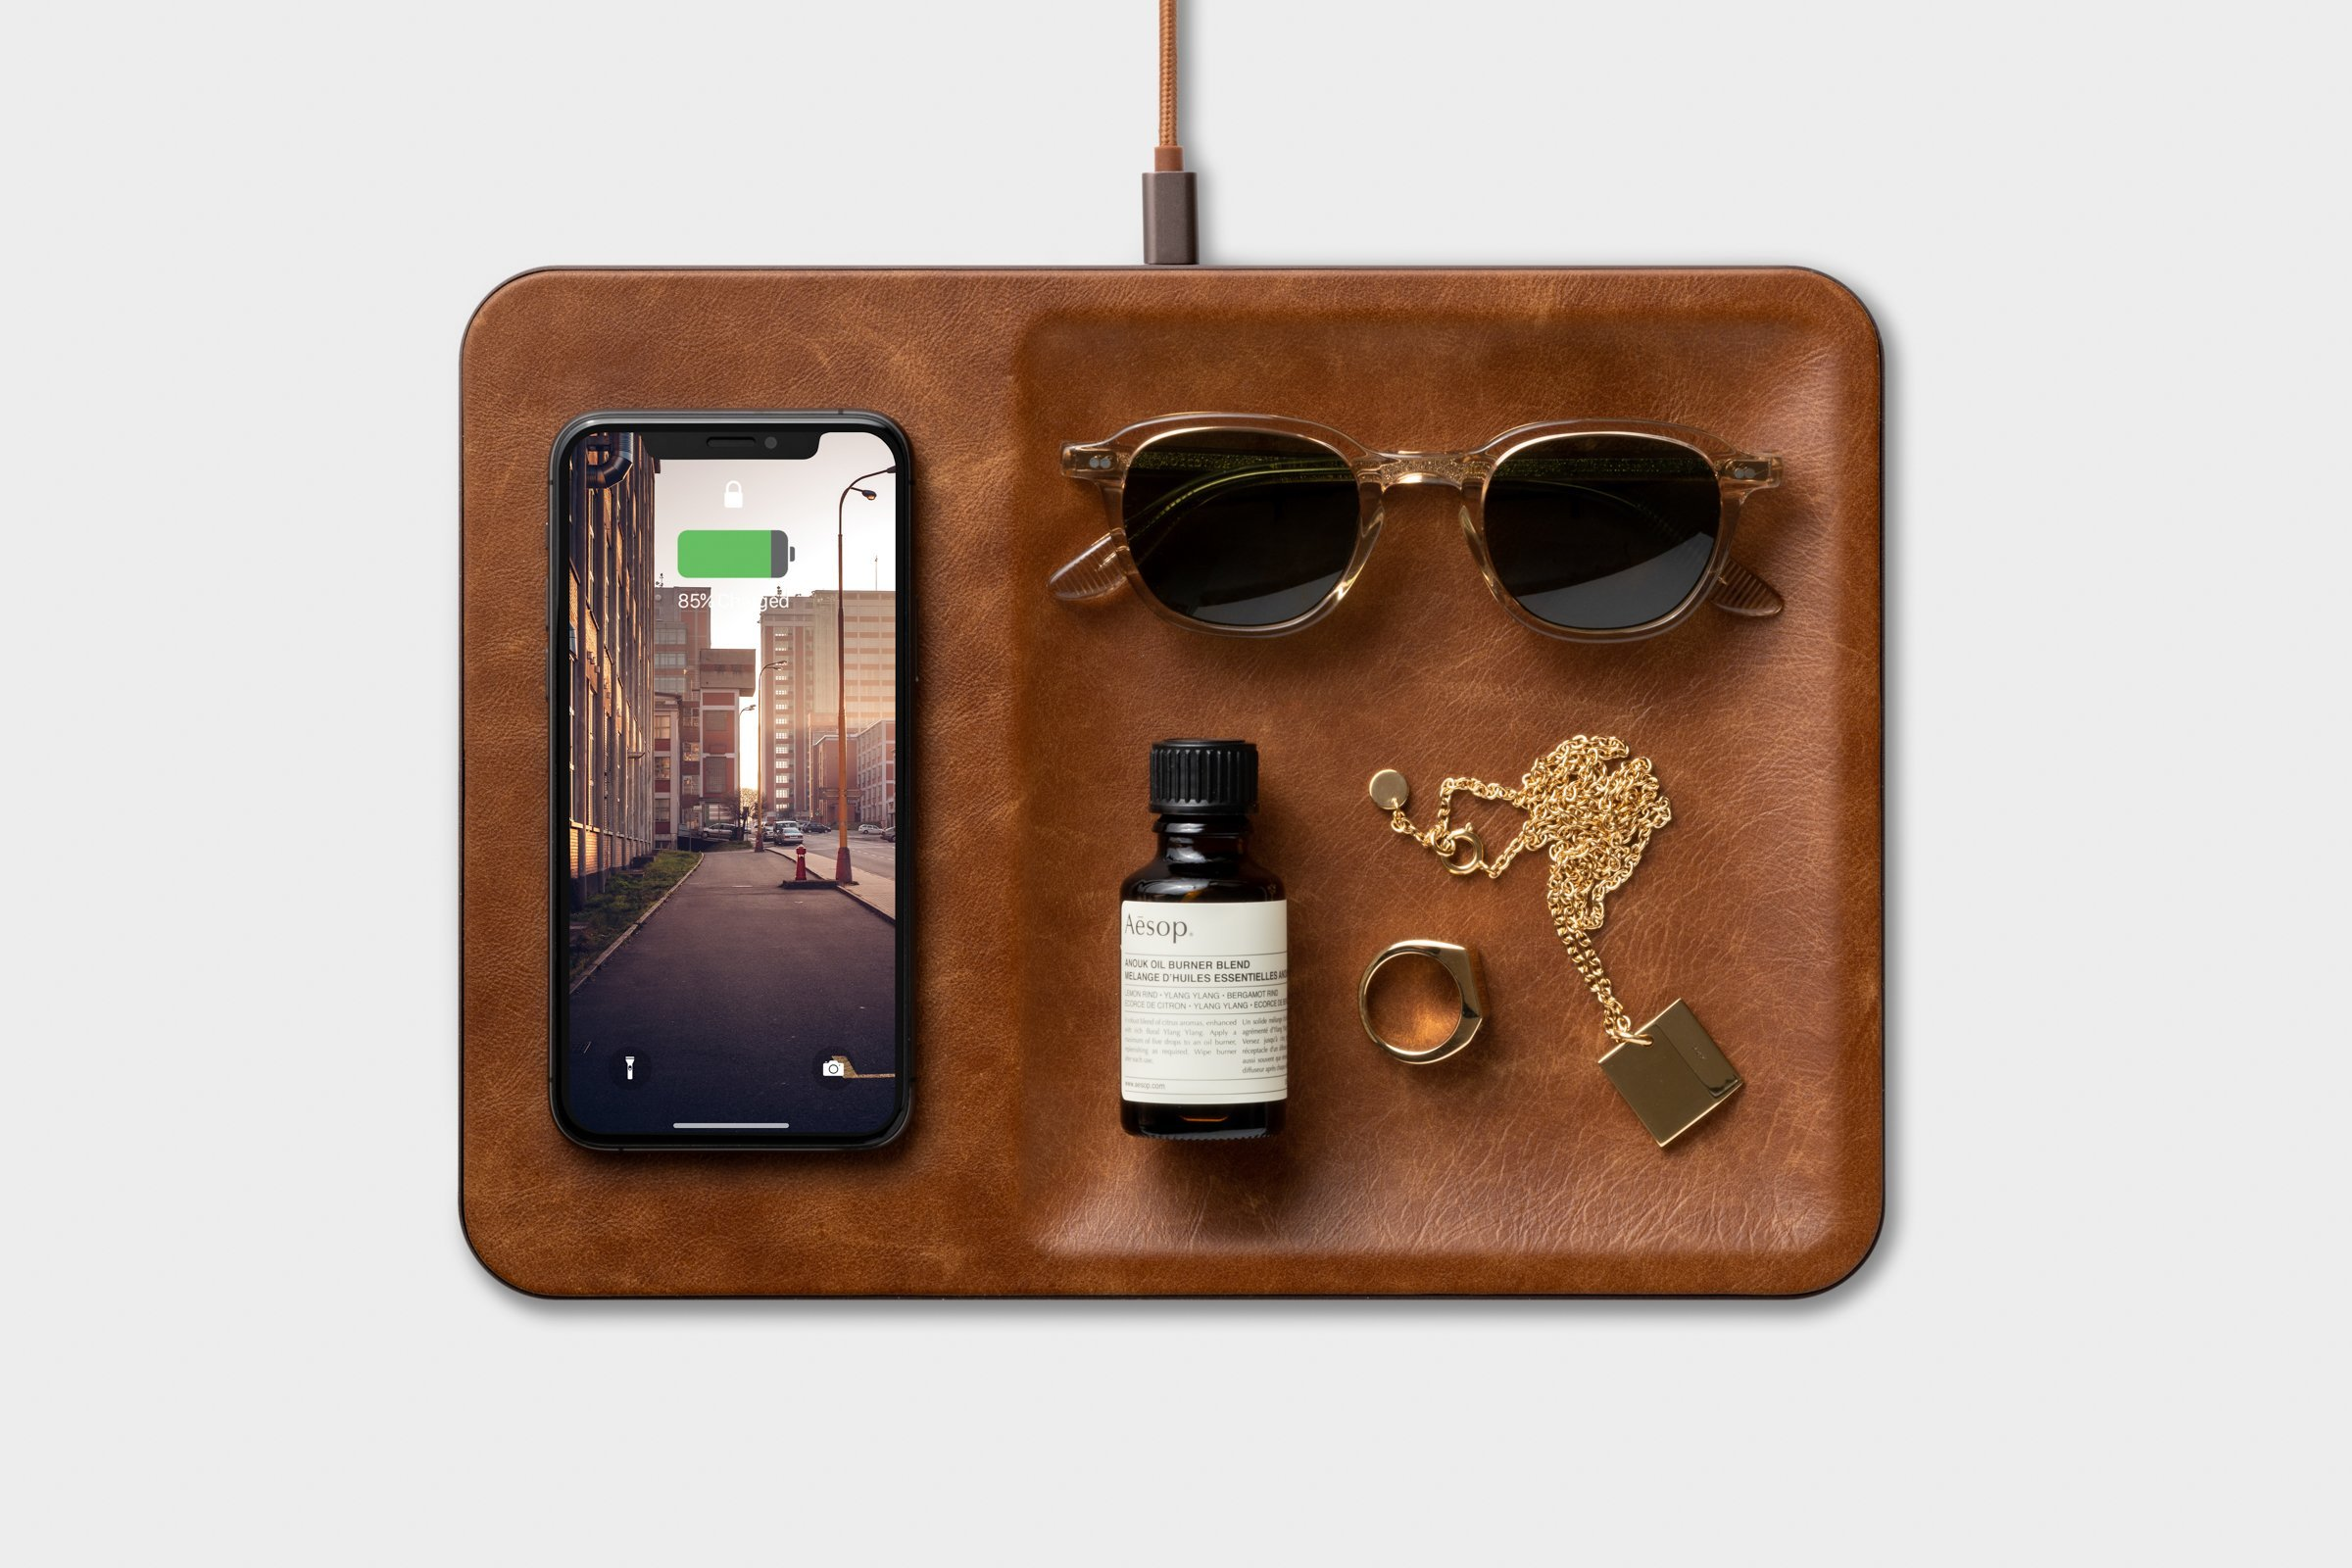 Wireless charger and organizer